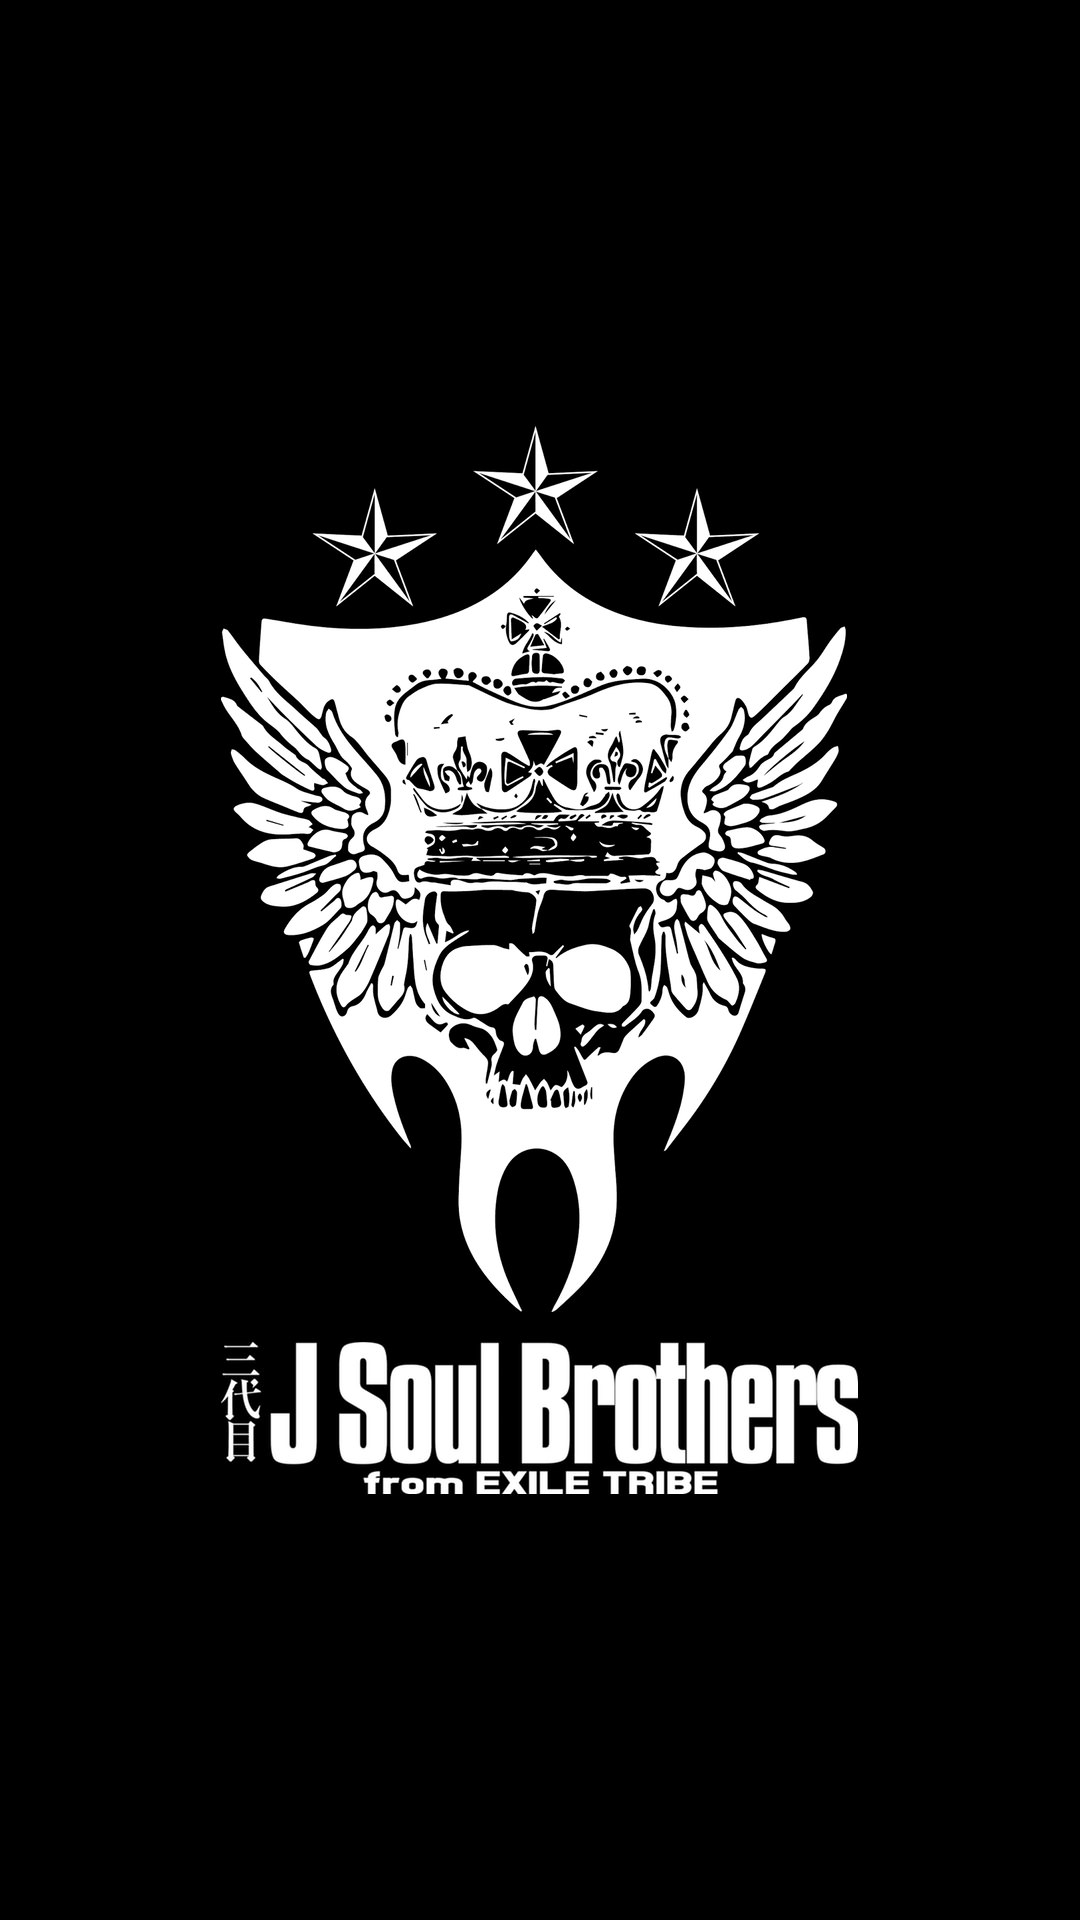 3jsb i02 - 三代目 J SOUL BROTHERSの高画質スマホ壁紙40枚 [iPhone&Androidに対応]